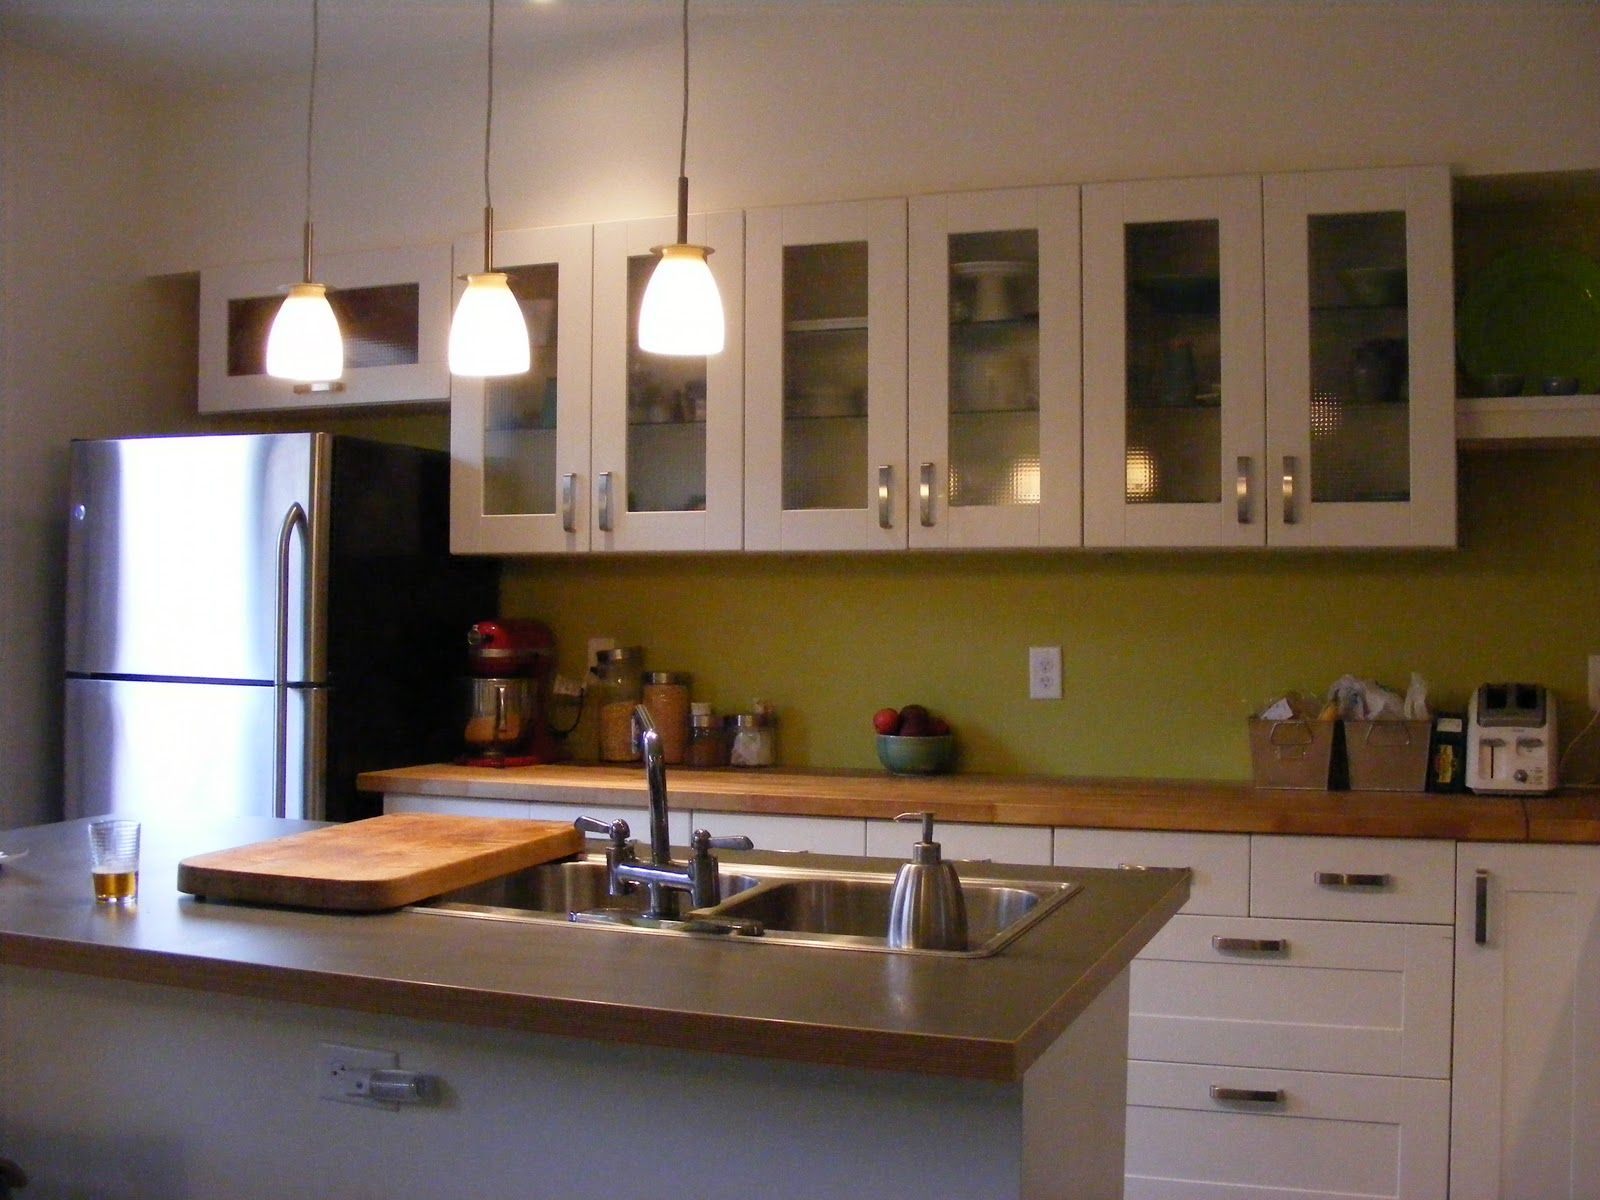 Ikea Kitchens Are Very Good Quality And The Cupboards Come With A 25